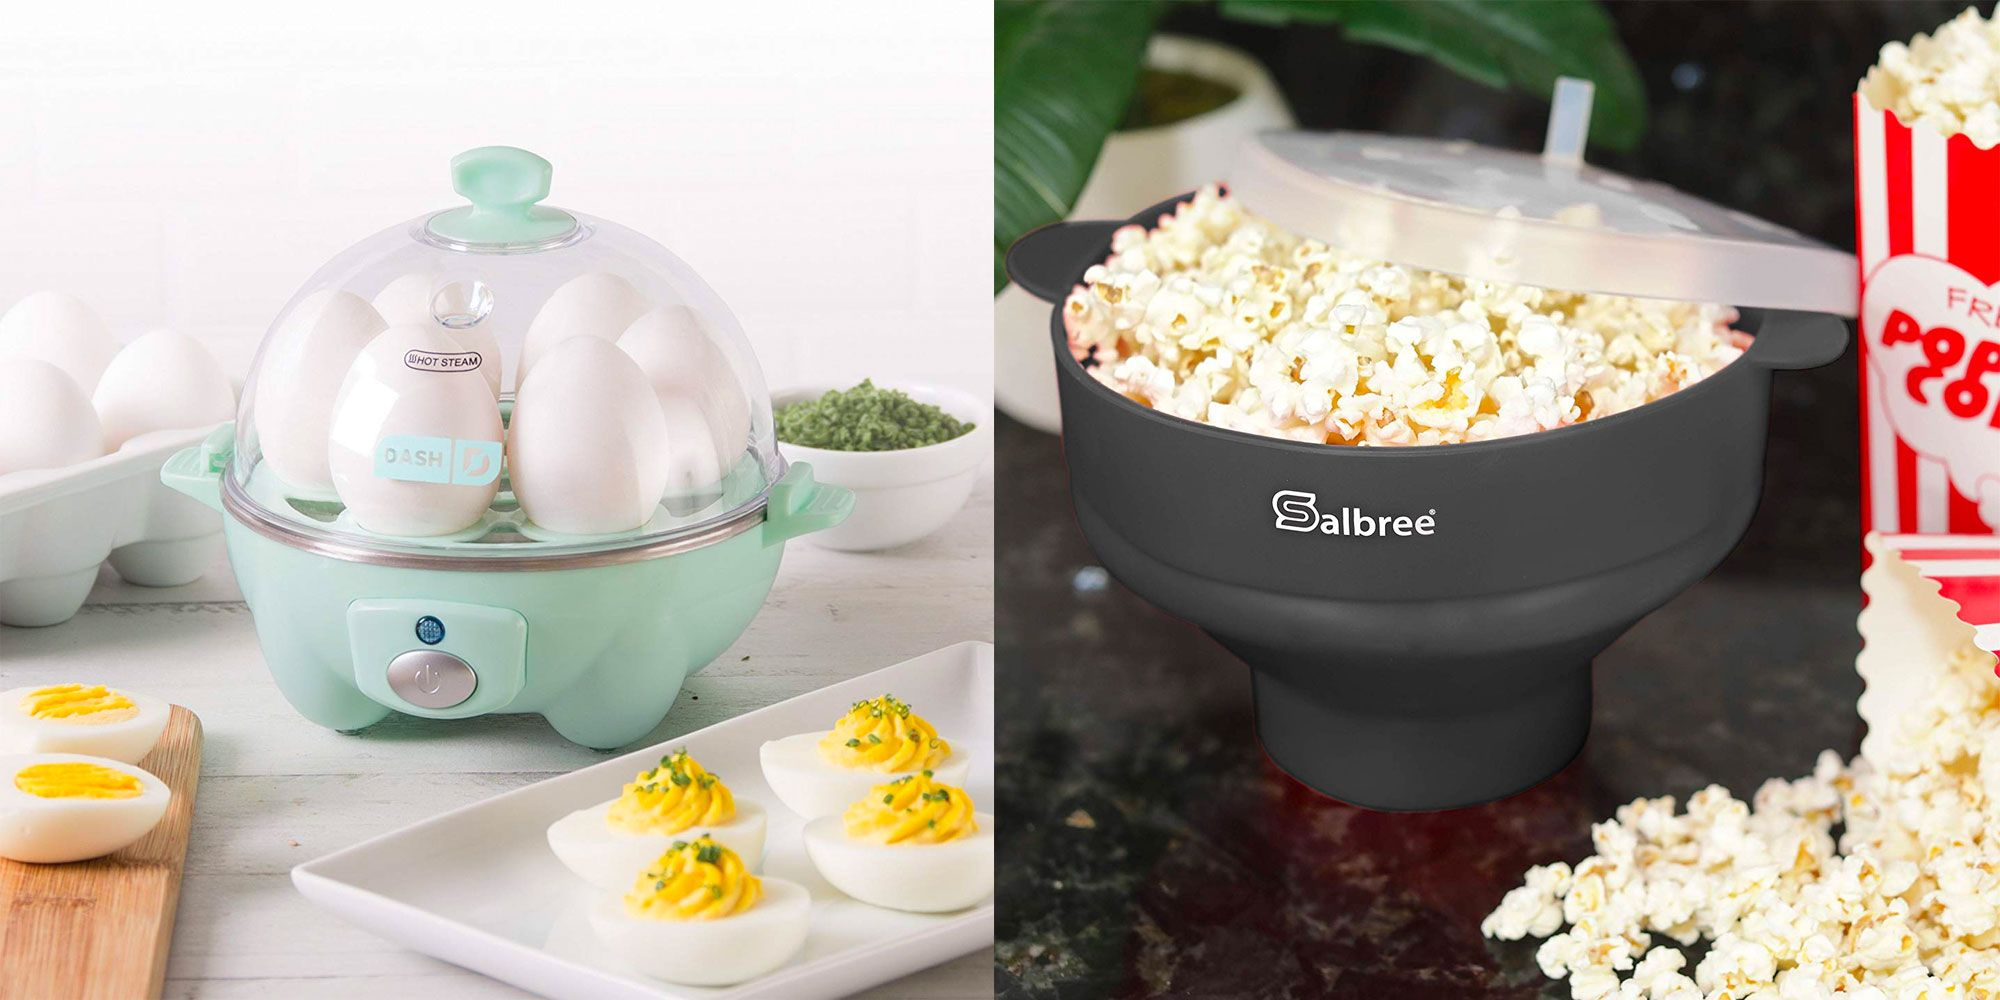 Amazon's Best-Selling Kitchen Products - Amazon Best Sellers